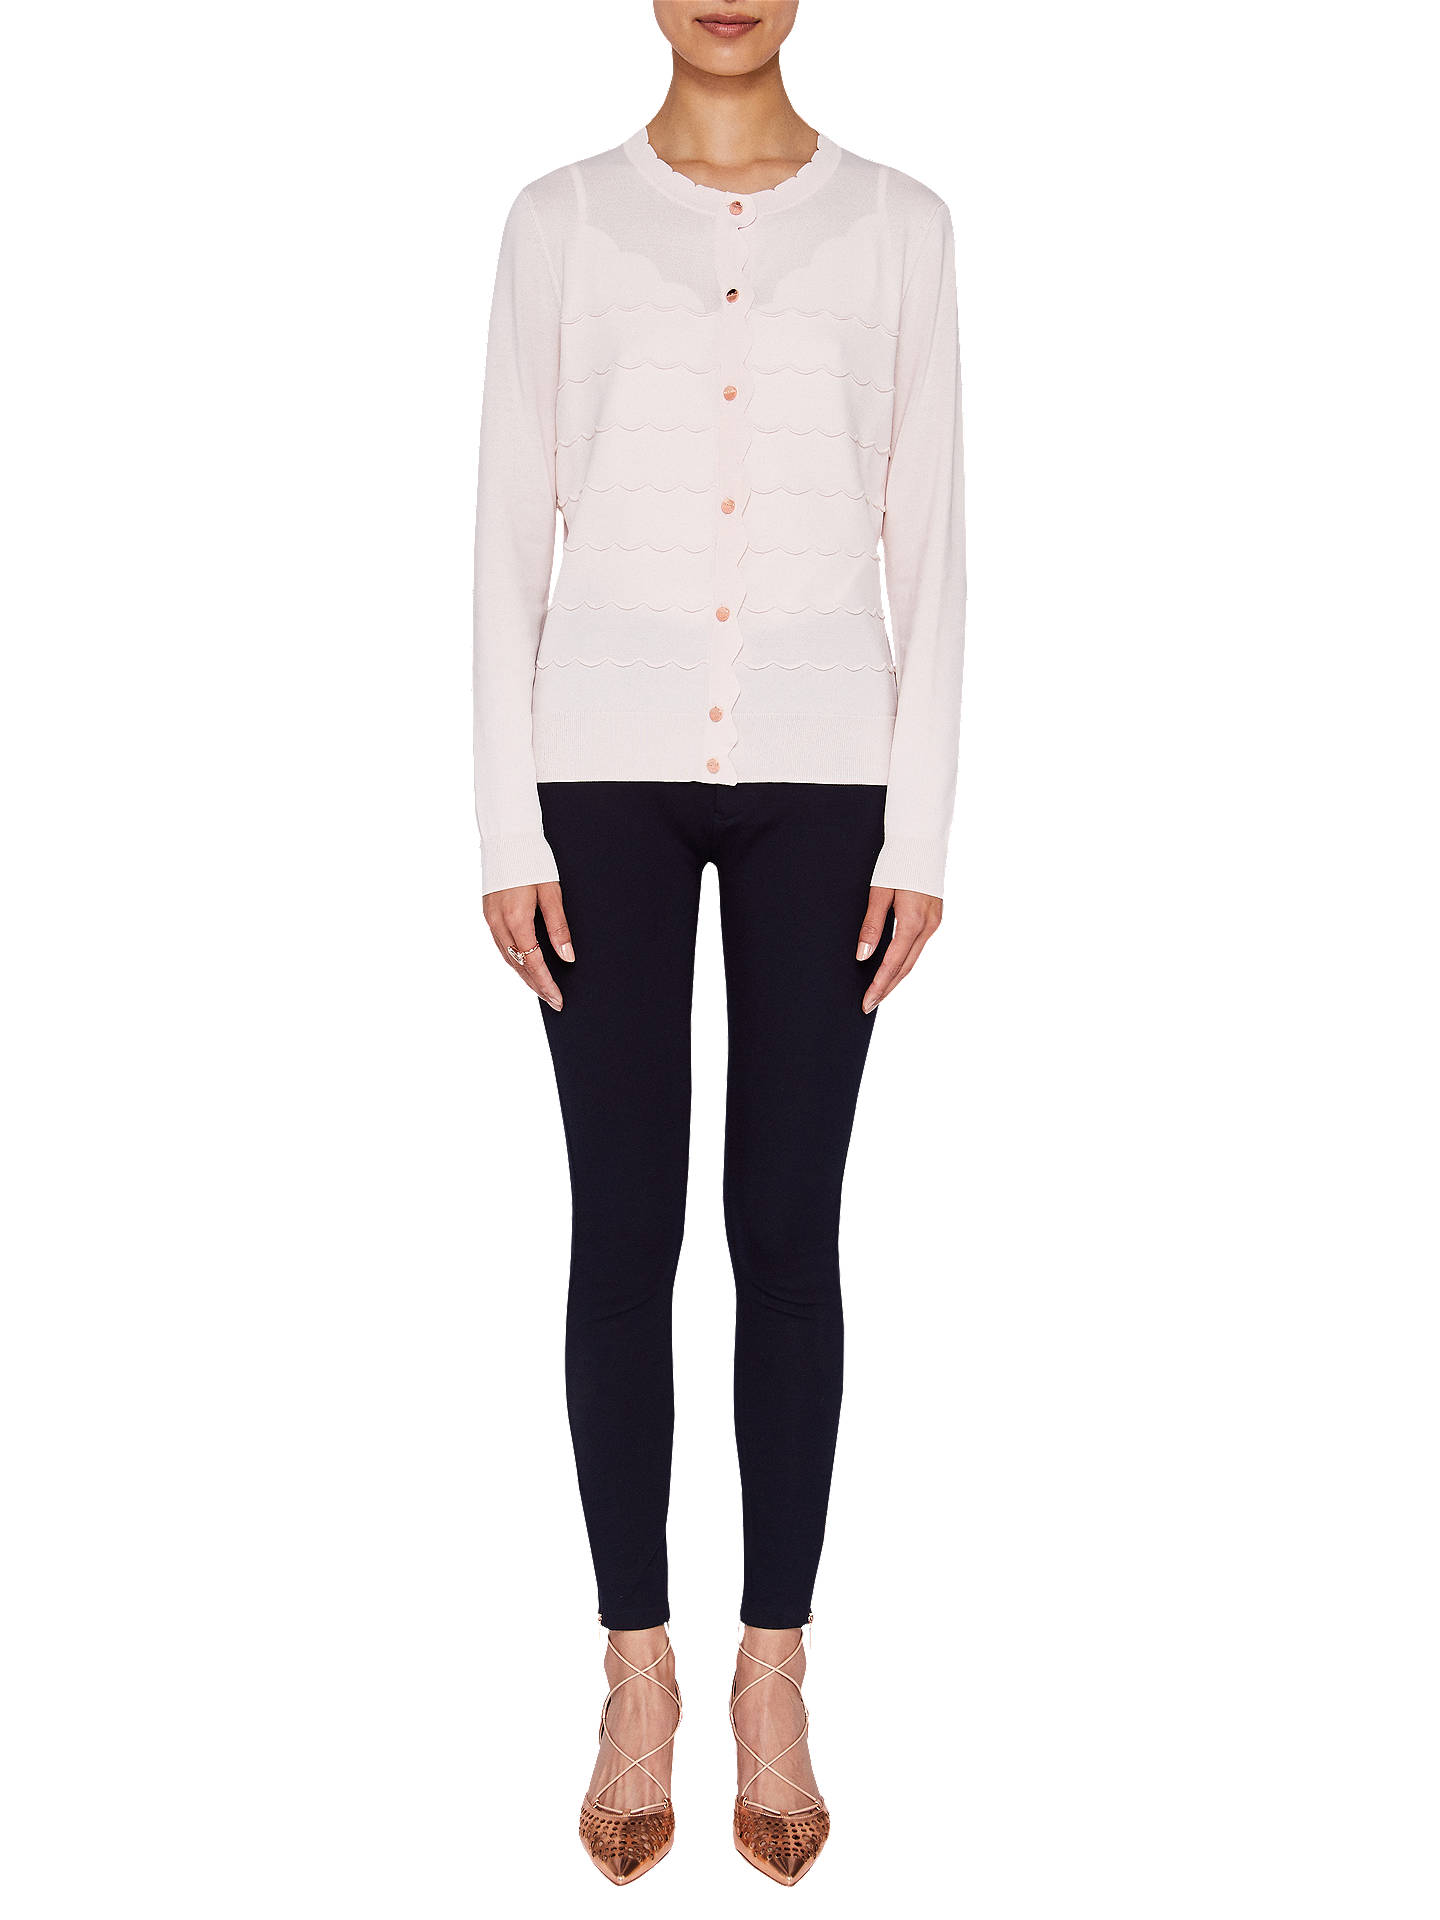 BuyTed Baker Cherell Scalloped Detail Cardigan, Pale Pink, 6 Online at johnlewis.com